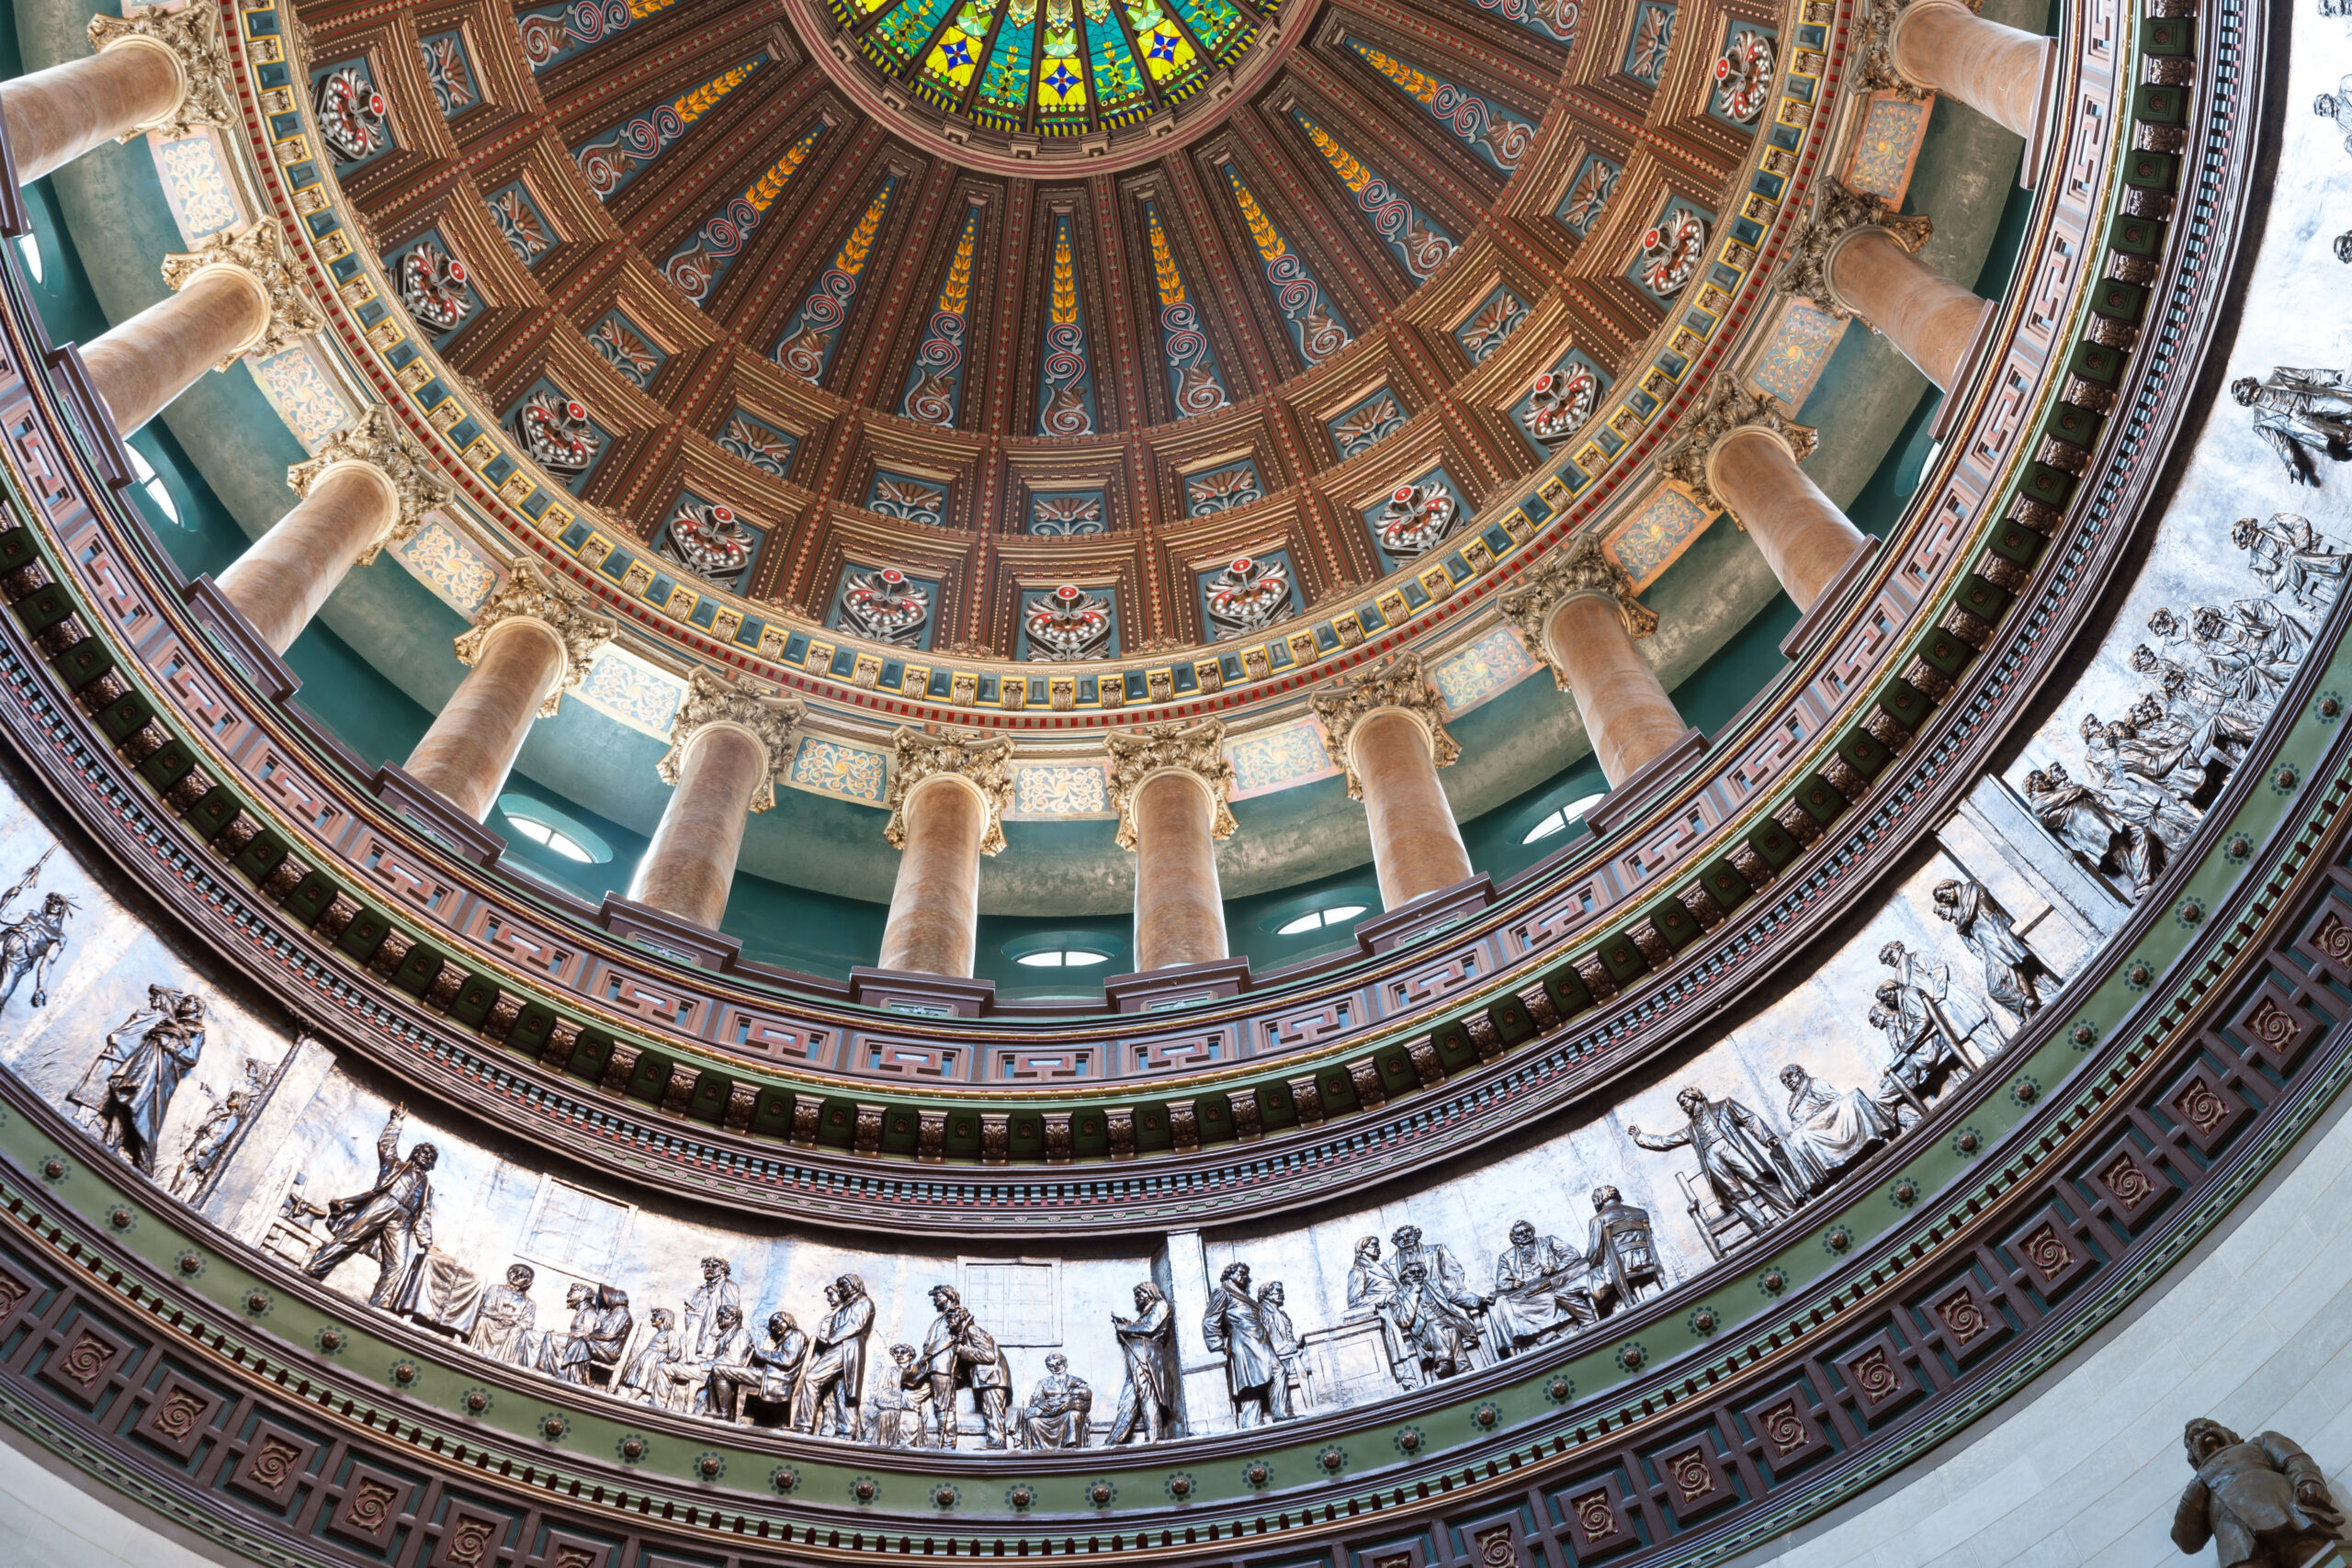 Ornate dome inside state capital building, Springfield, Illinois